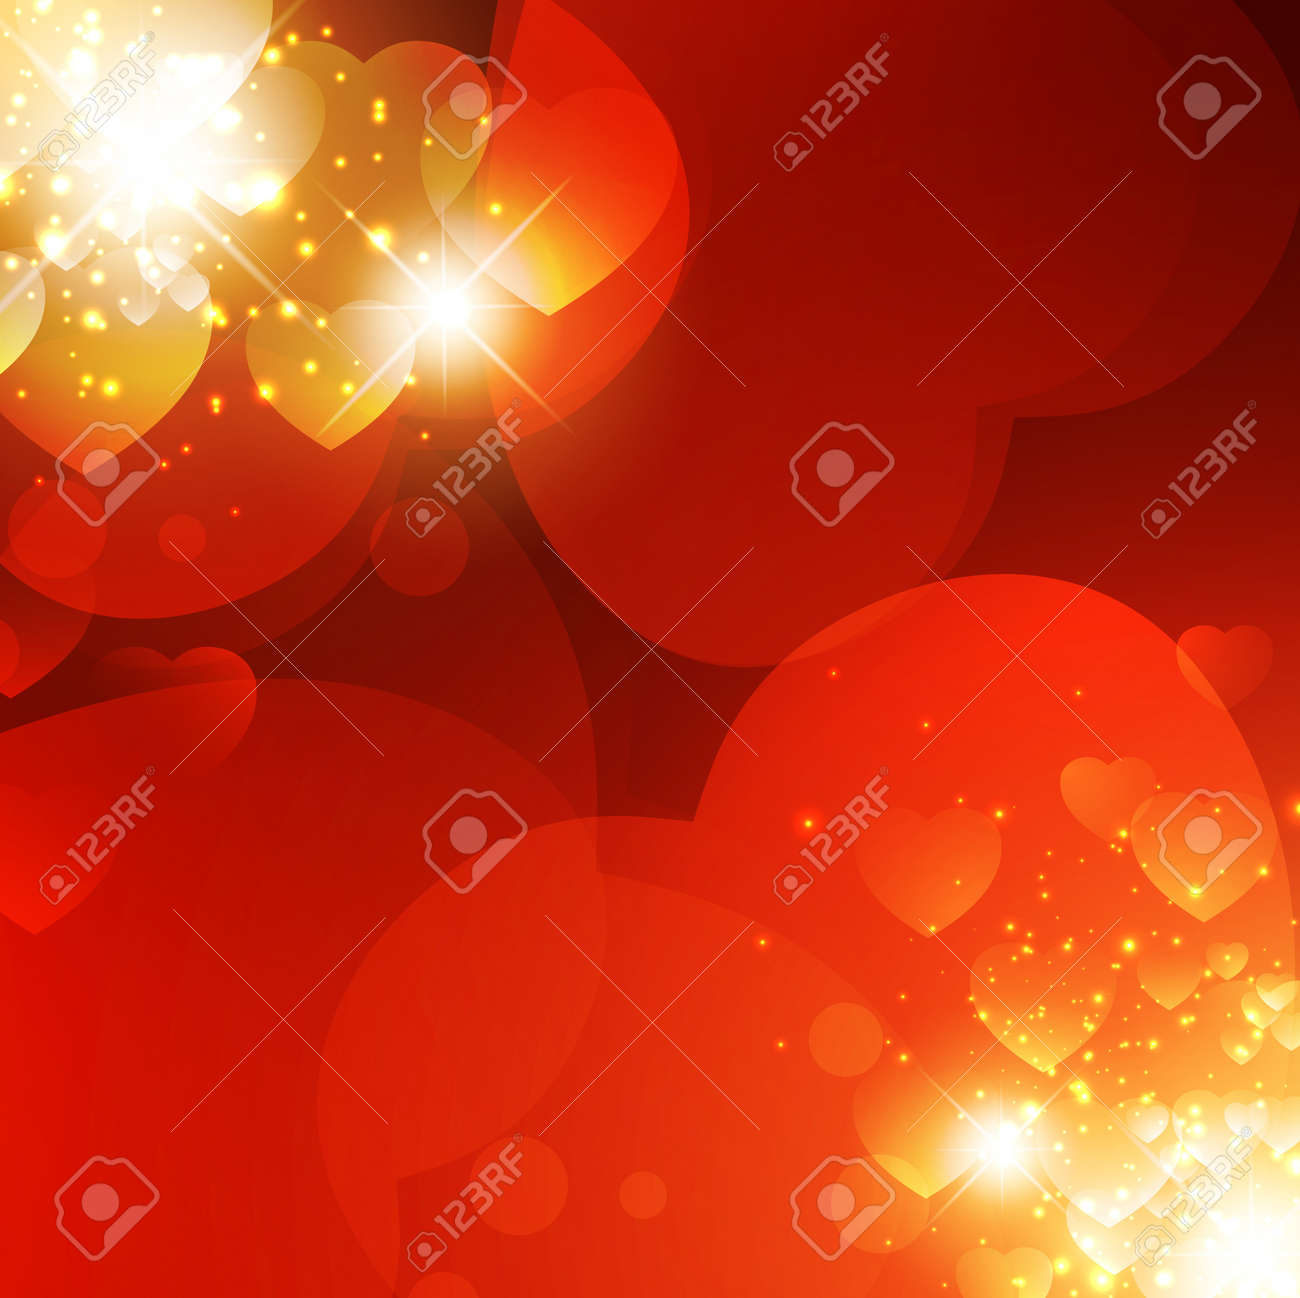 Abstract Valentine background with light and hearts Stock Vector - 11869274